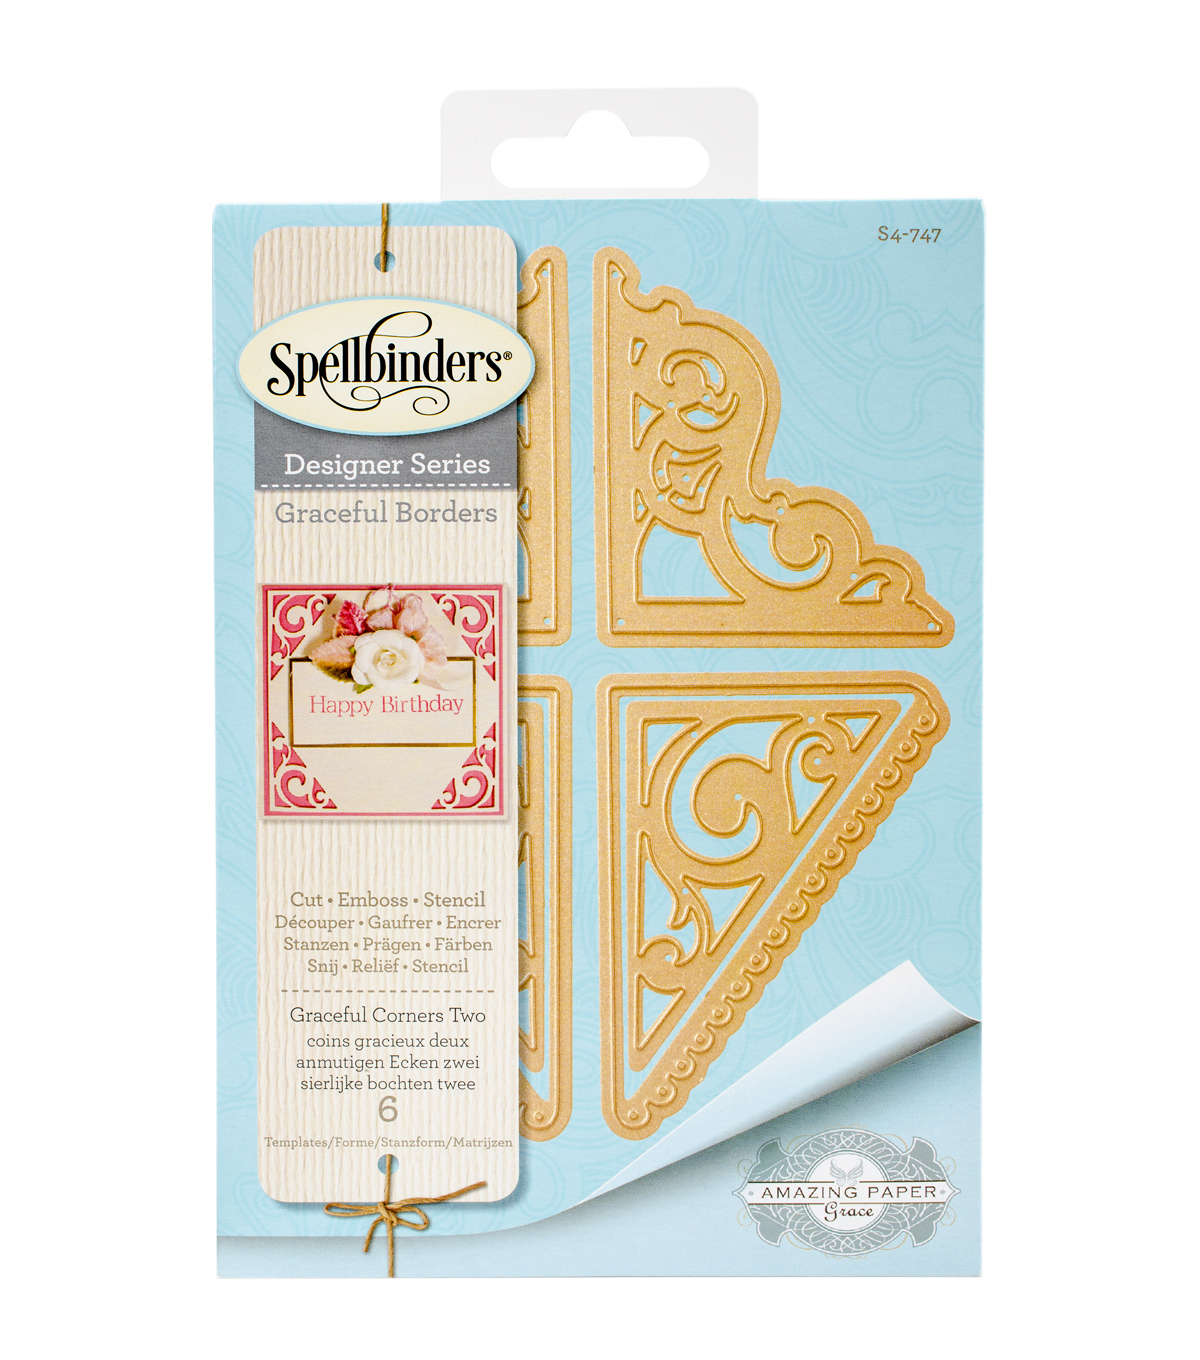 Spellbinders® Card Creator 6 Pack Etched Dies-Graceful Corners 2